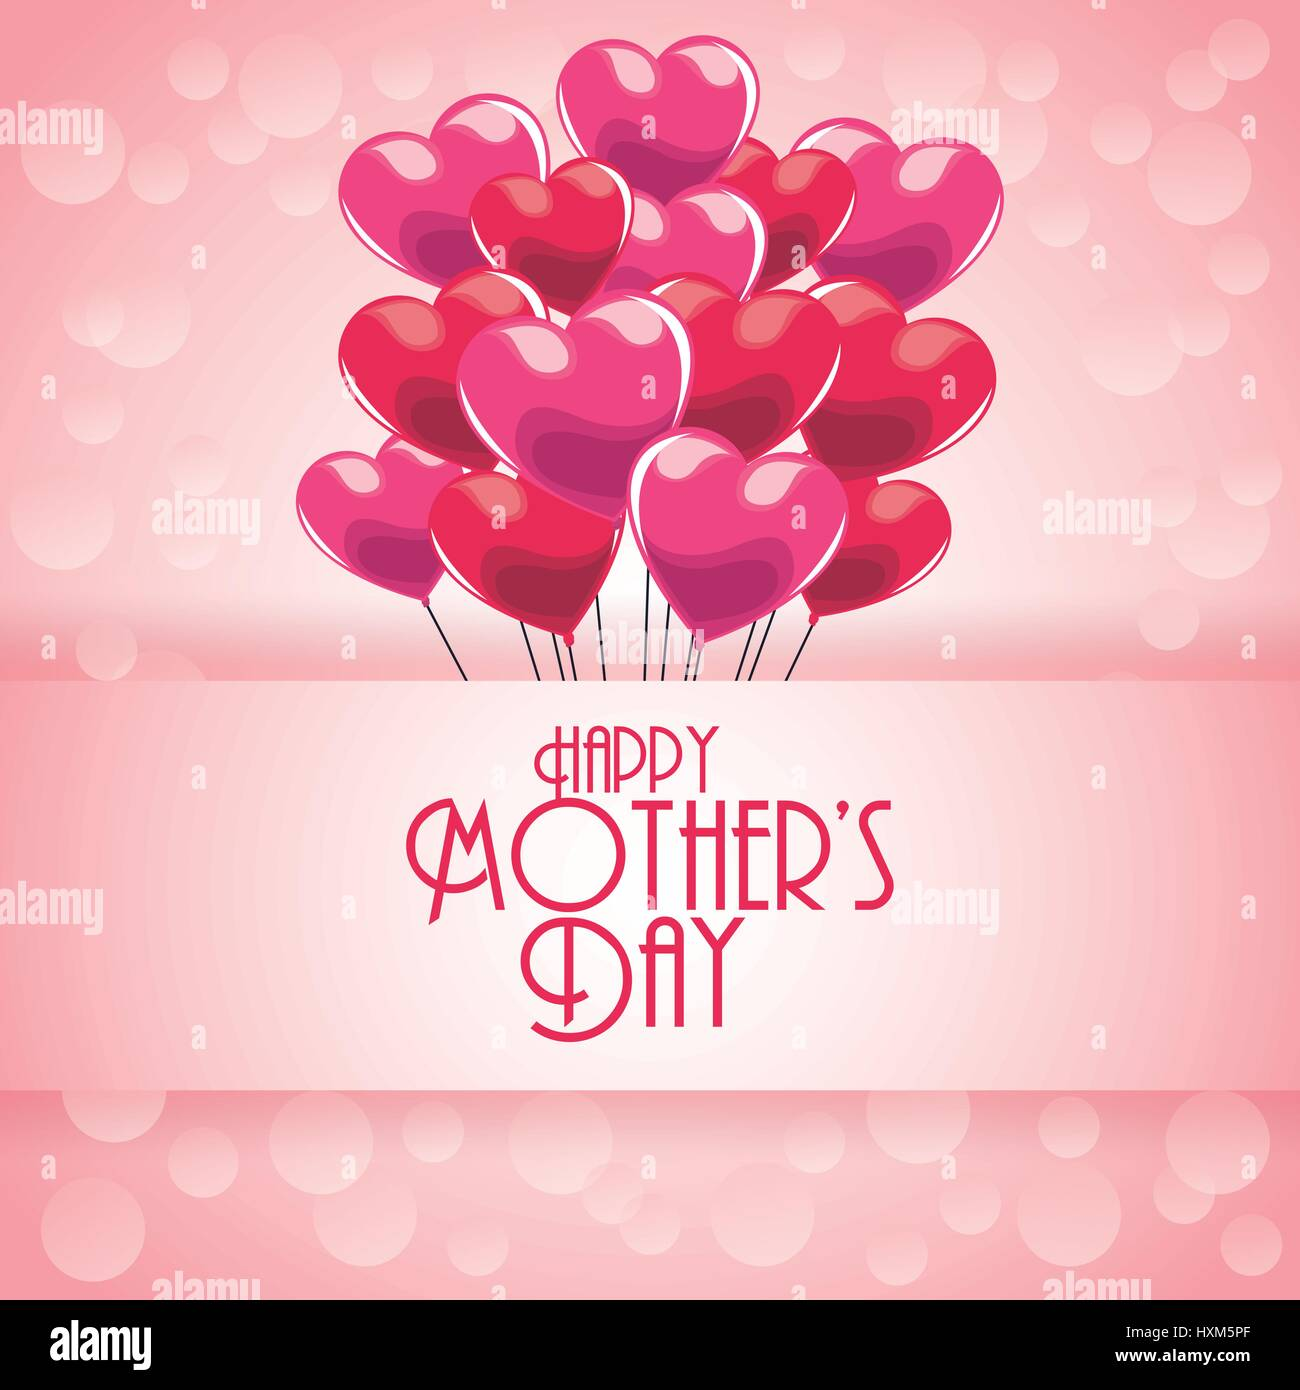 Happy Mothers Day Greeting With Heart Balloons And Bubbles